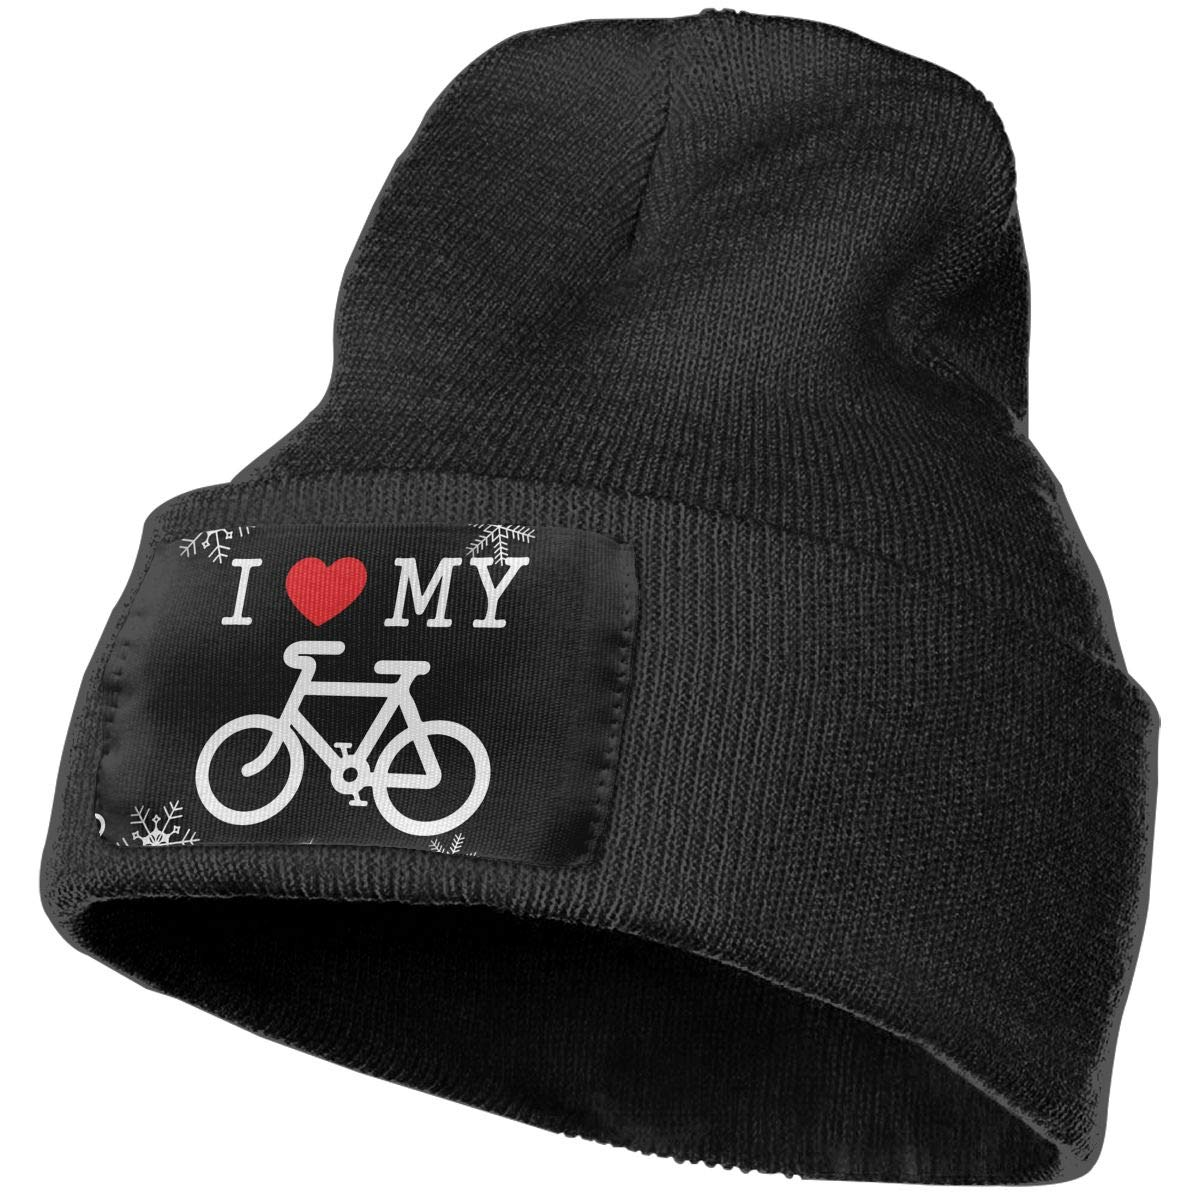 I Love My Bike Beanie Cap Hat Men /& Women Knit Hats Stretchy /& Soft Beanie